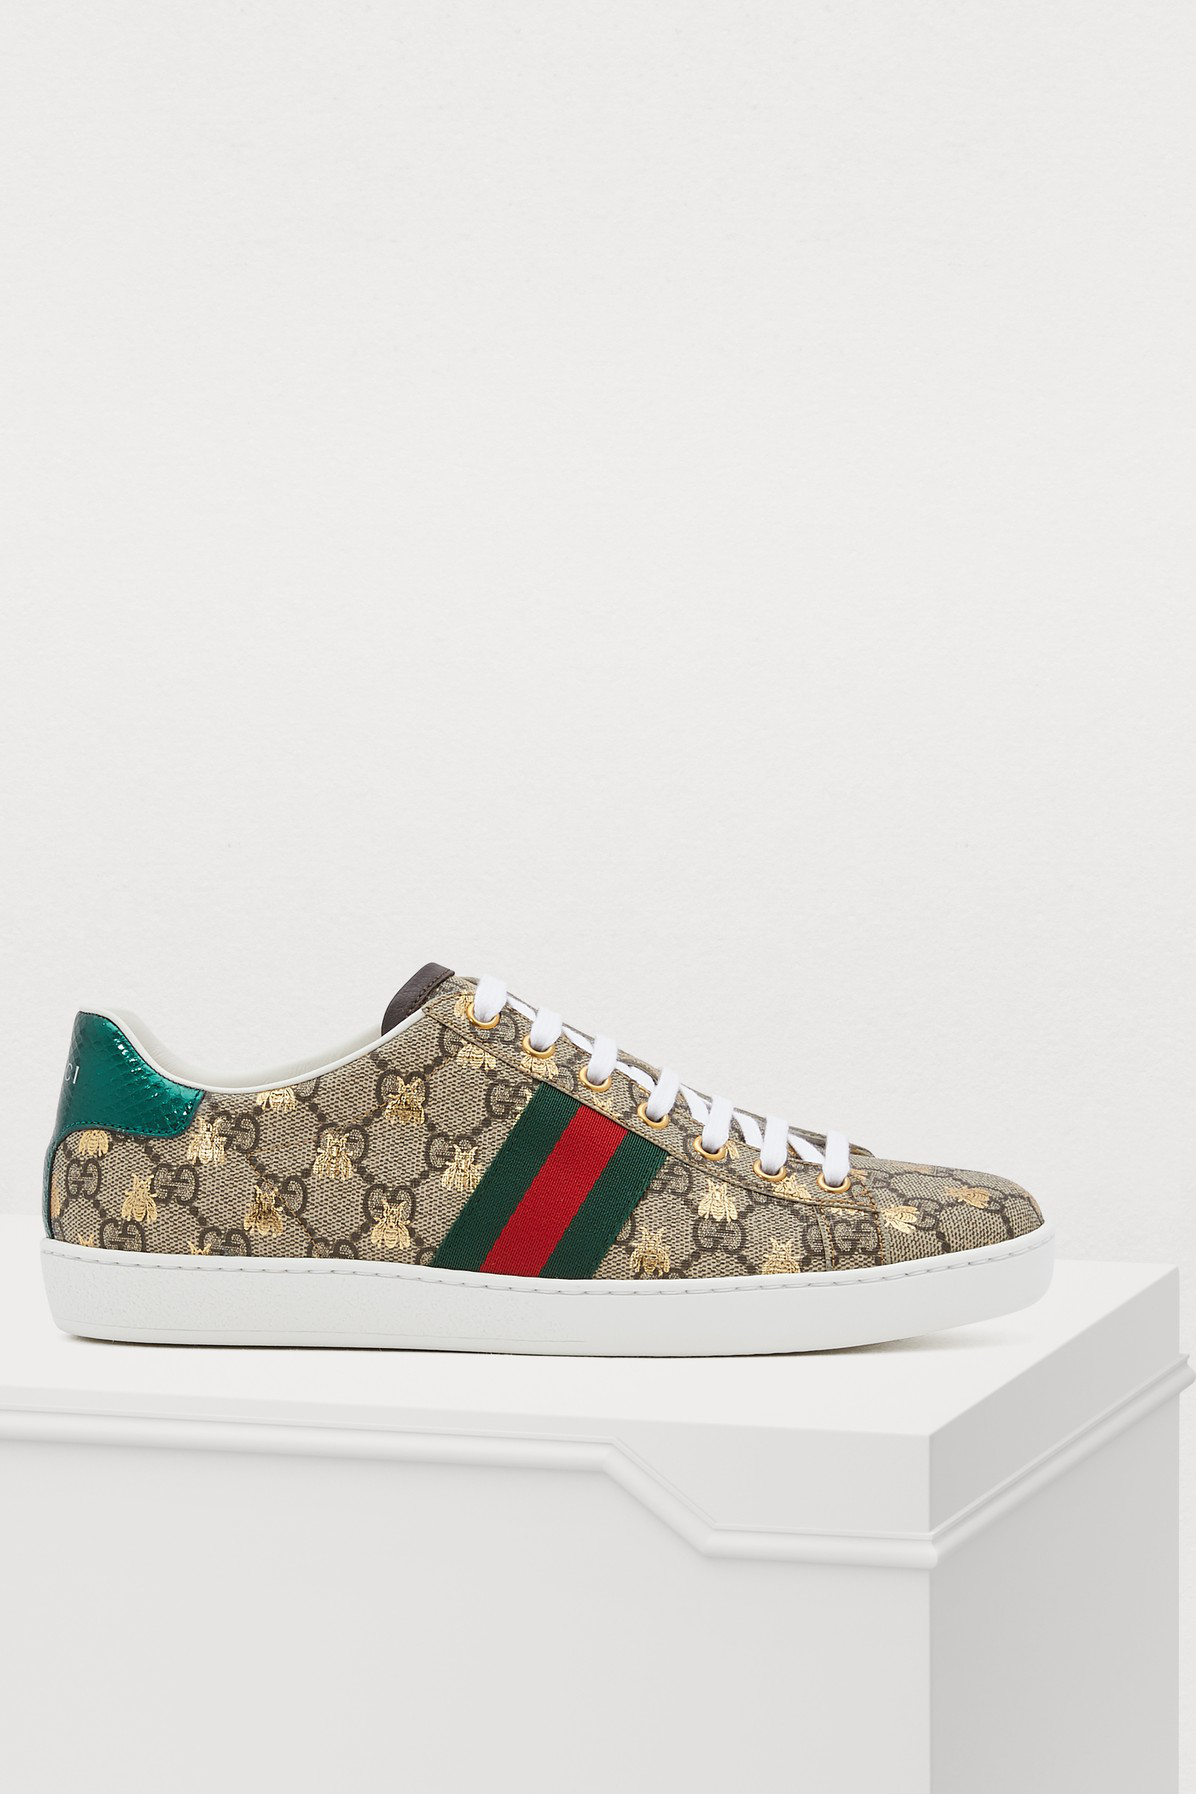 5a74cc17972 Gucci 20Mm New Ace Gg Supreme Canvas Sneakers In Neutrals